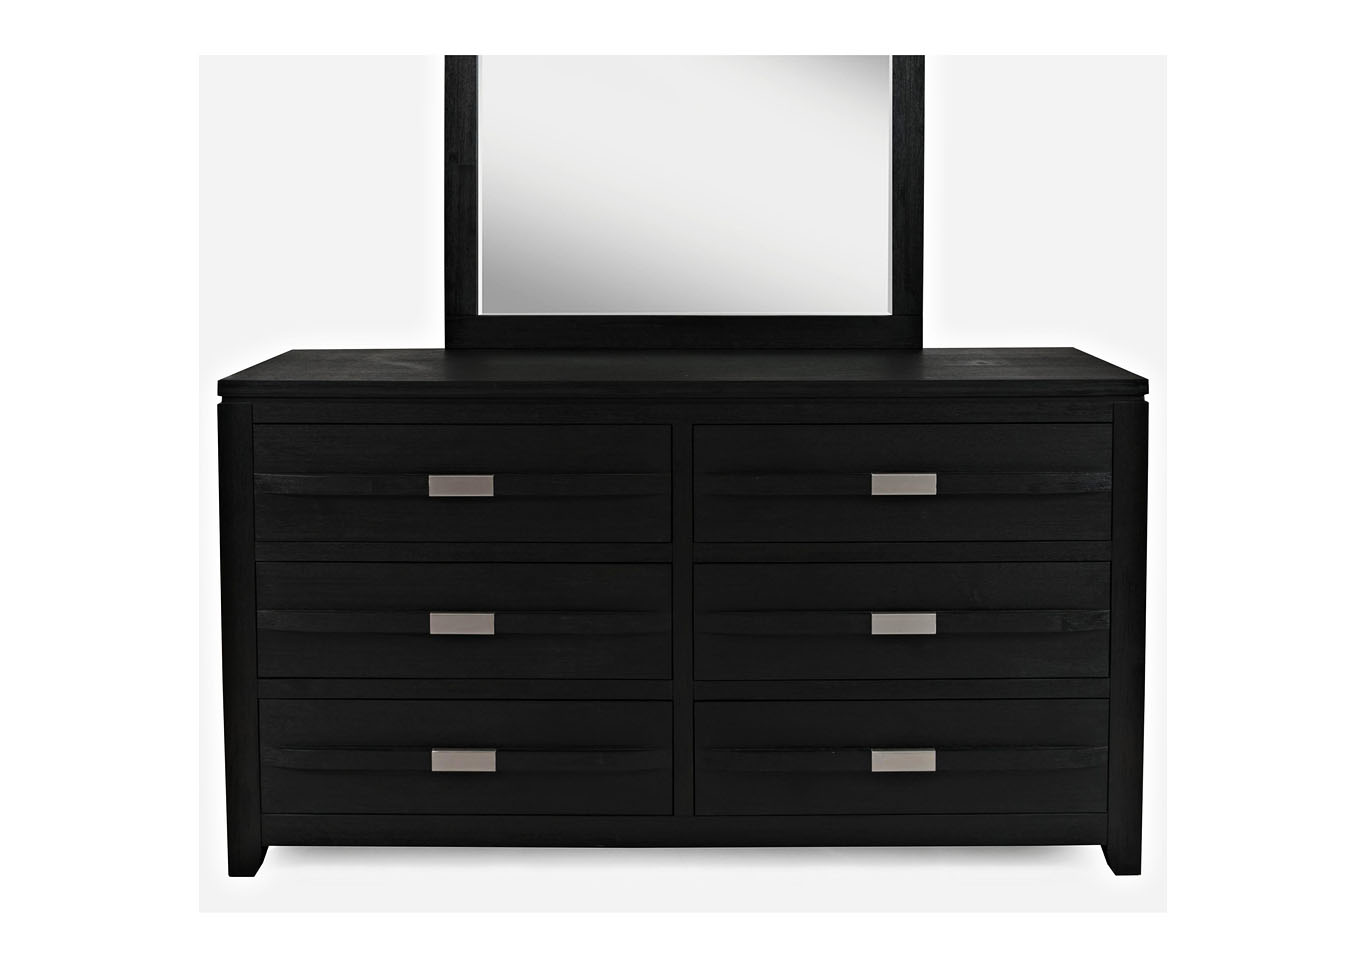 Altima Black 4pc Storage Platform Bedroom Group - Queen,Instore